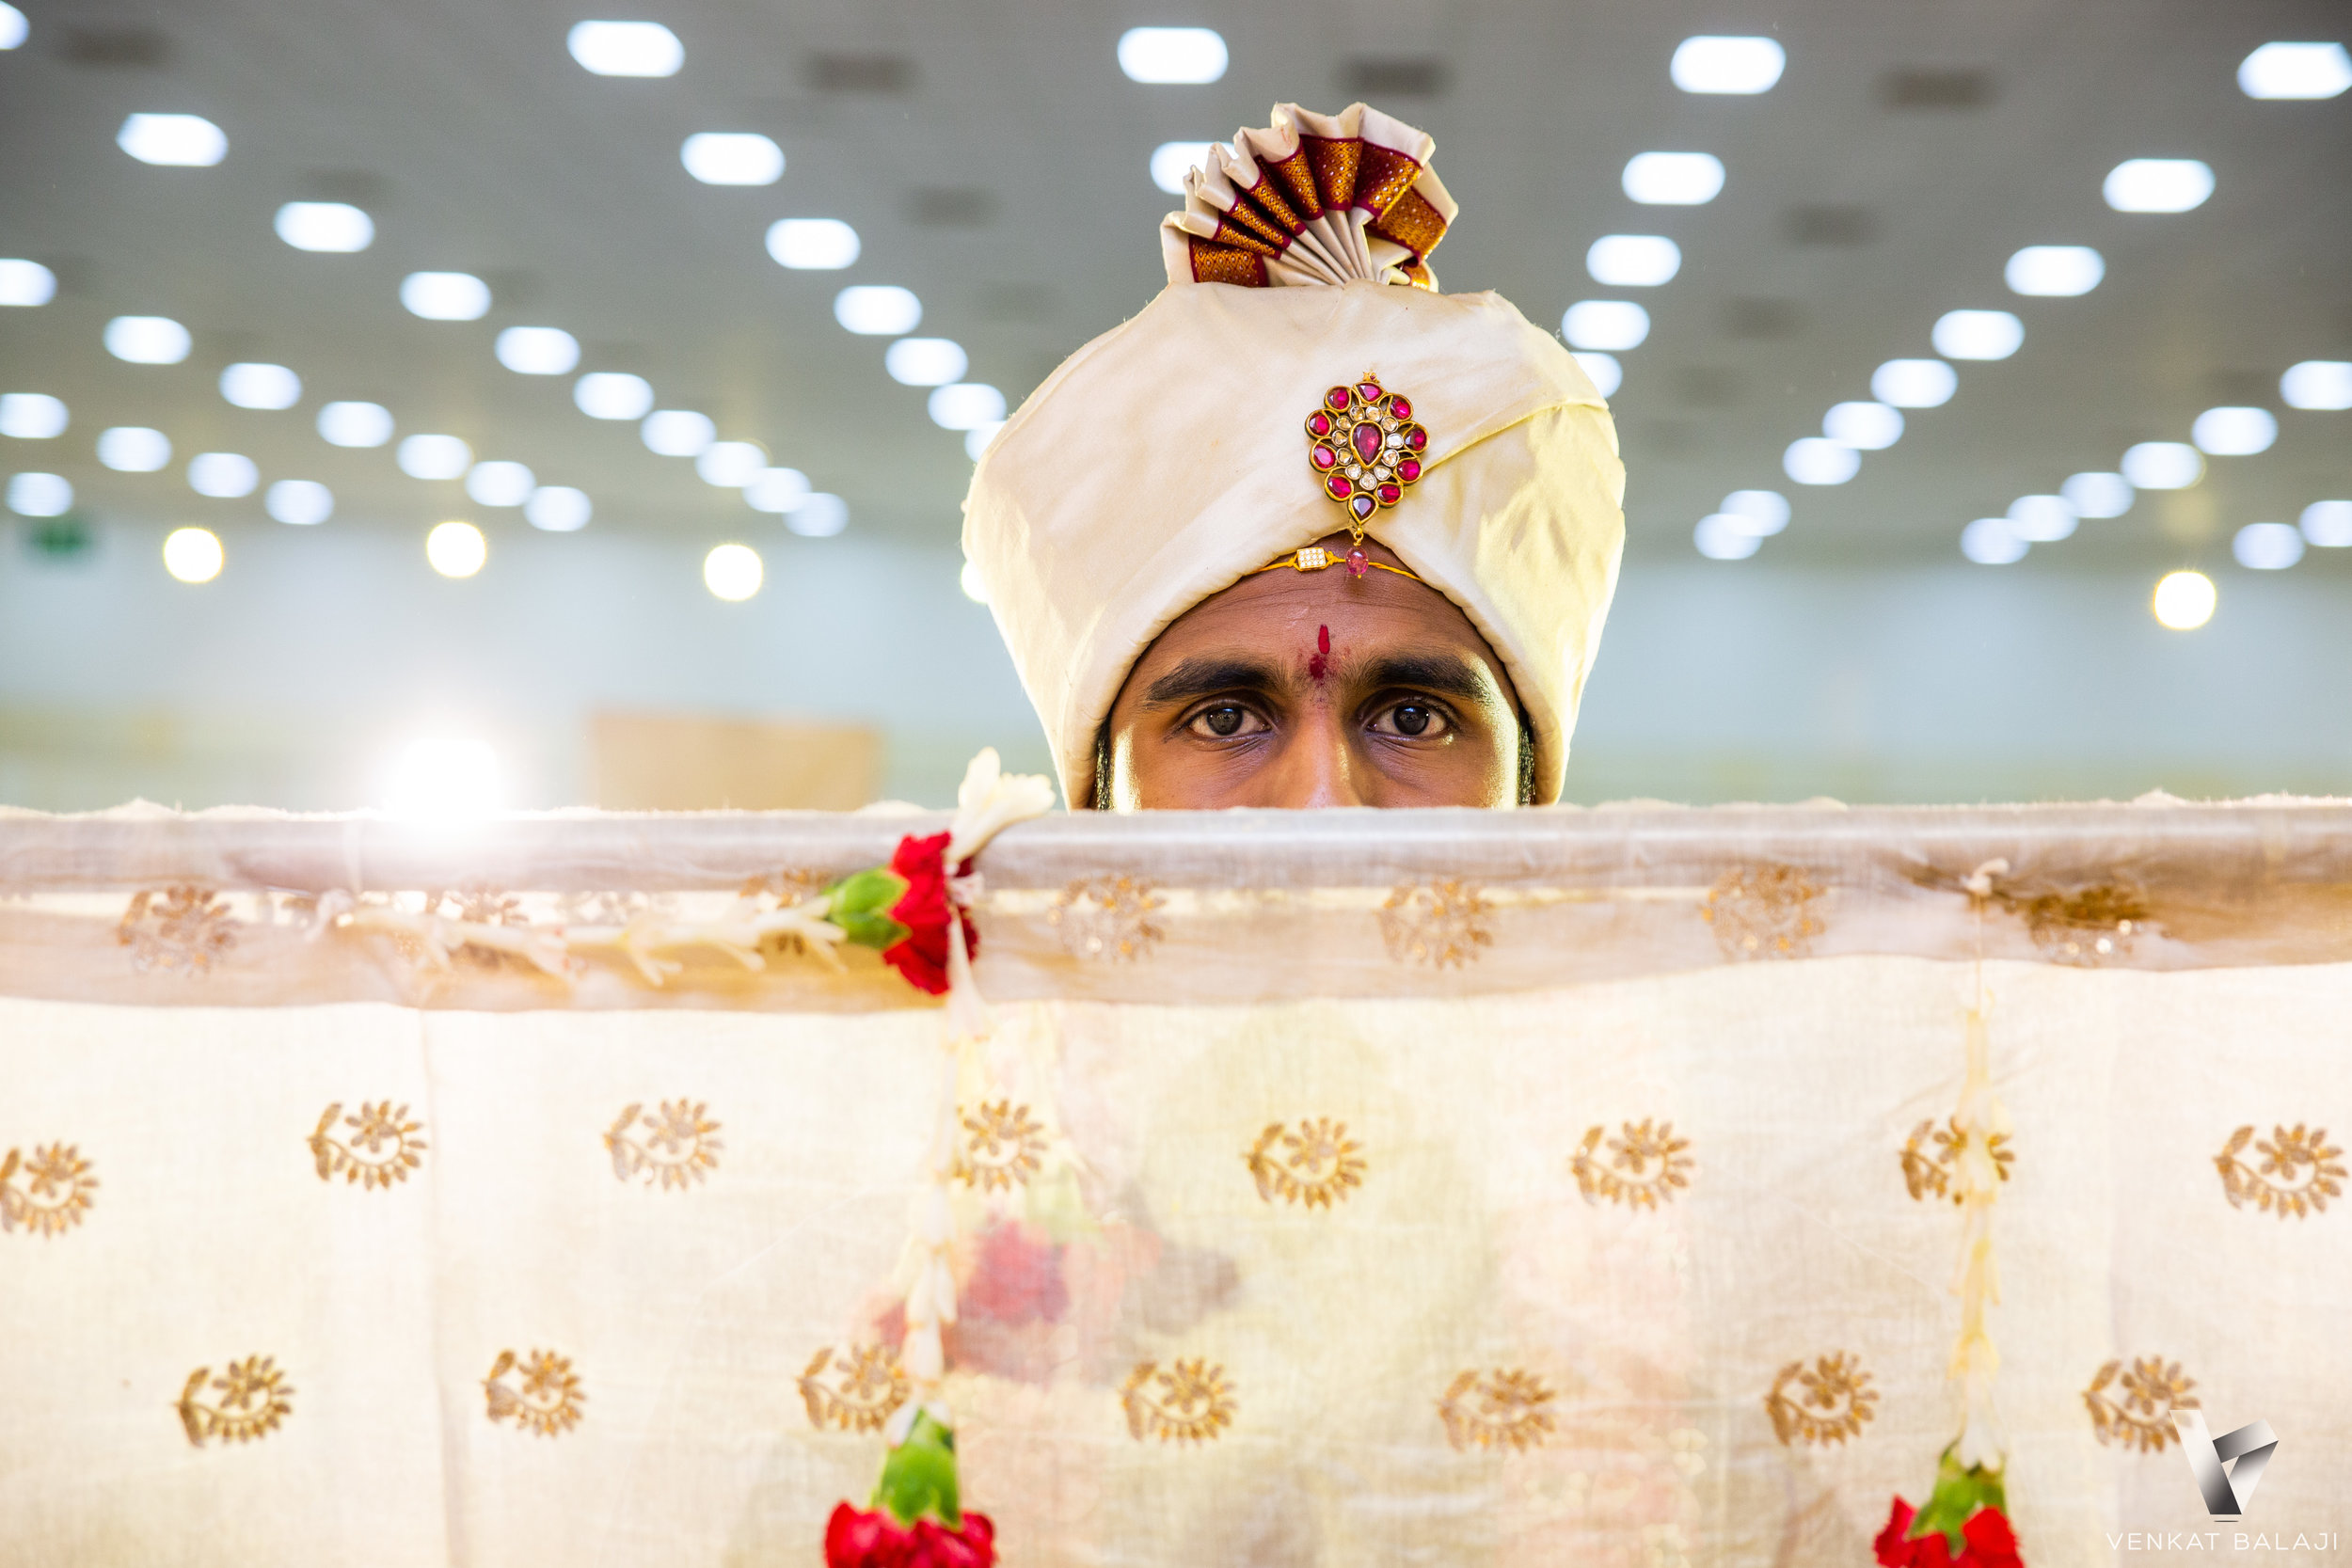 Arjun_Divya_Wedding_Preview-134.jpg